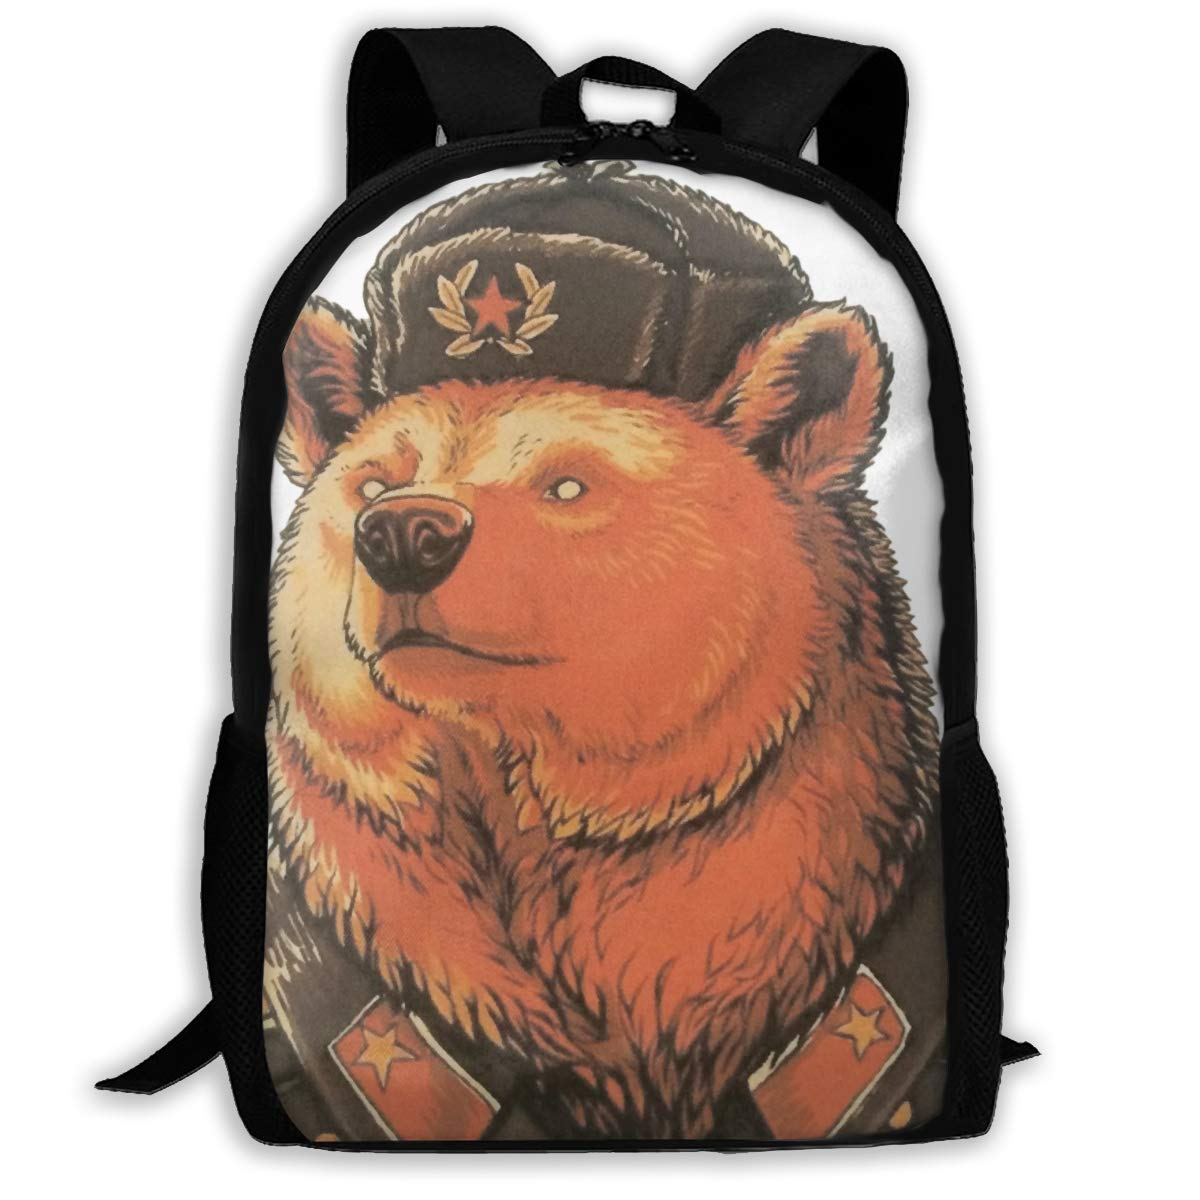 jhguihuyftyrtytgjkh Casual Backpack Bear Police 3D Printing School Bags for Boys Girls Unisex Adult Shoulder Bag ILY Bag Outdoor Orts